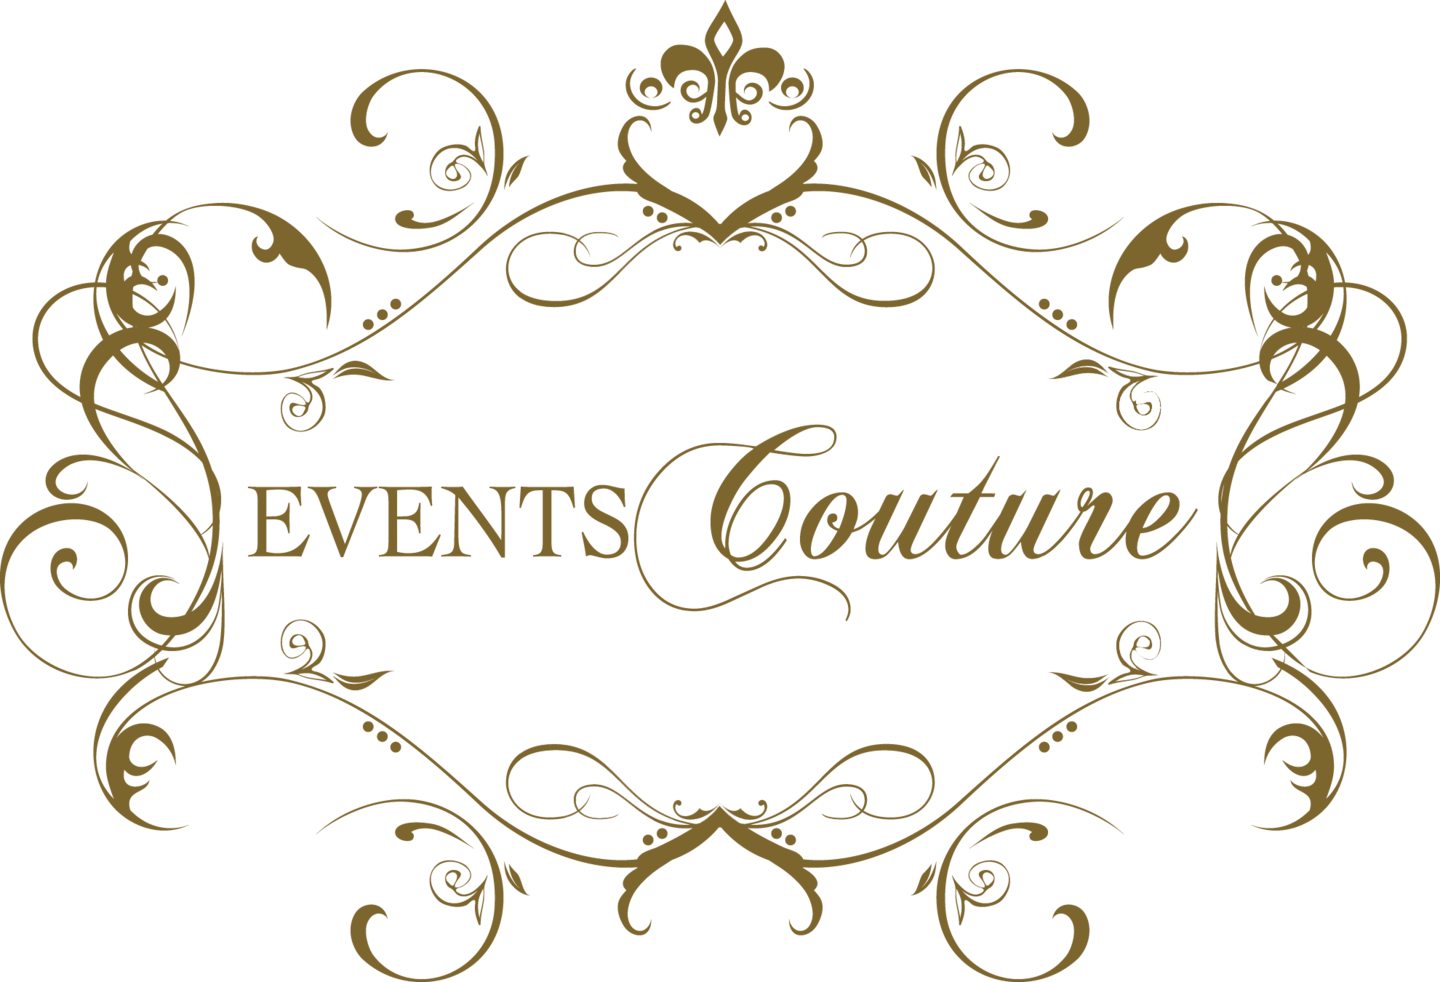 Events Couture